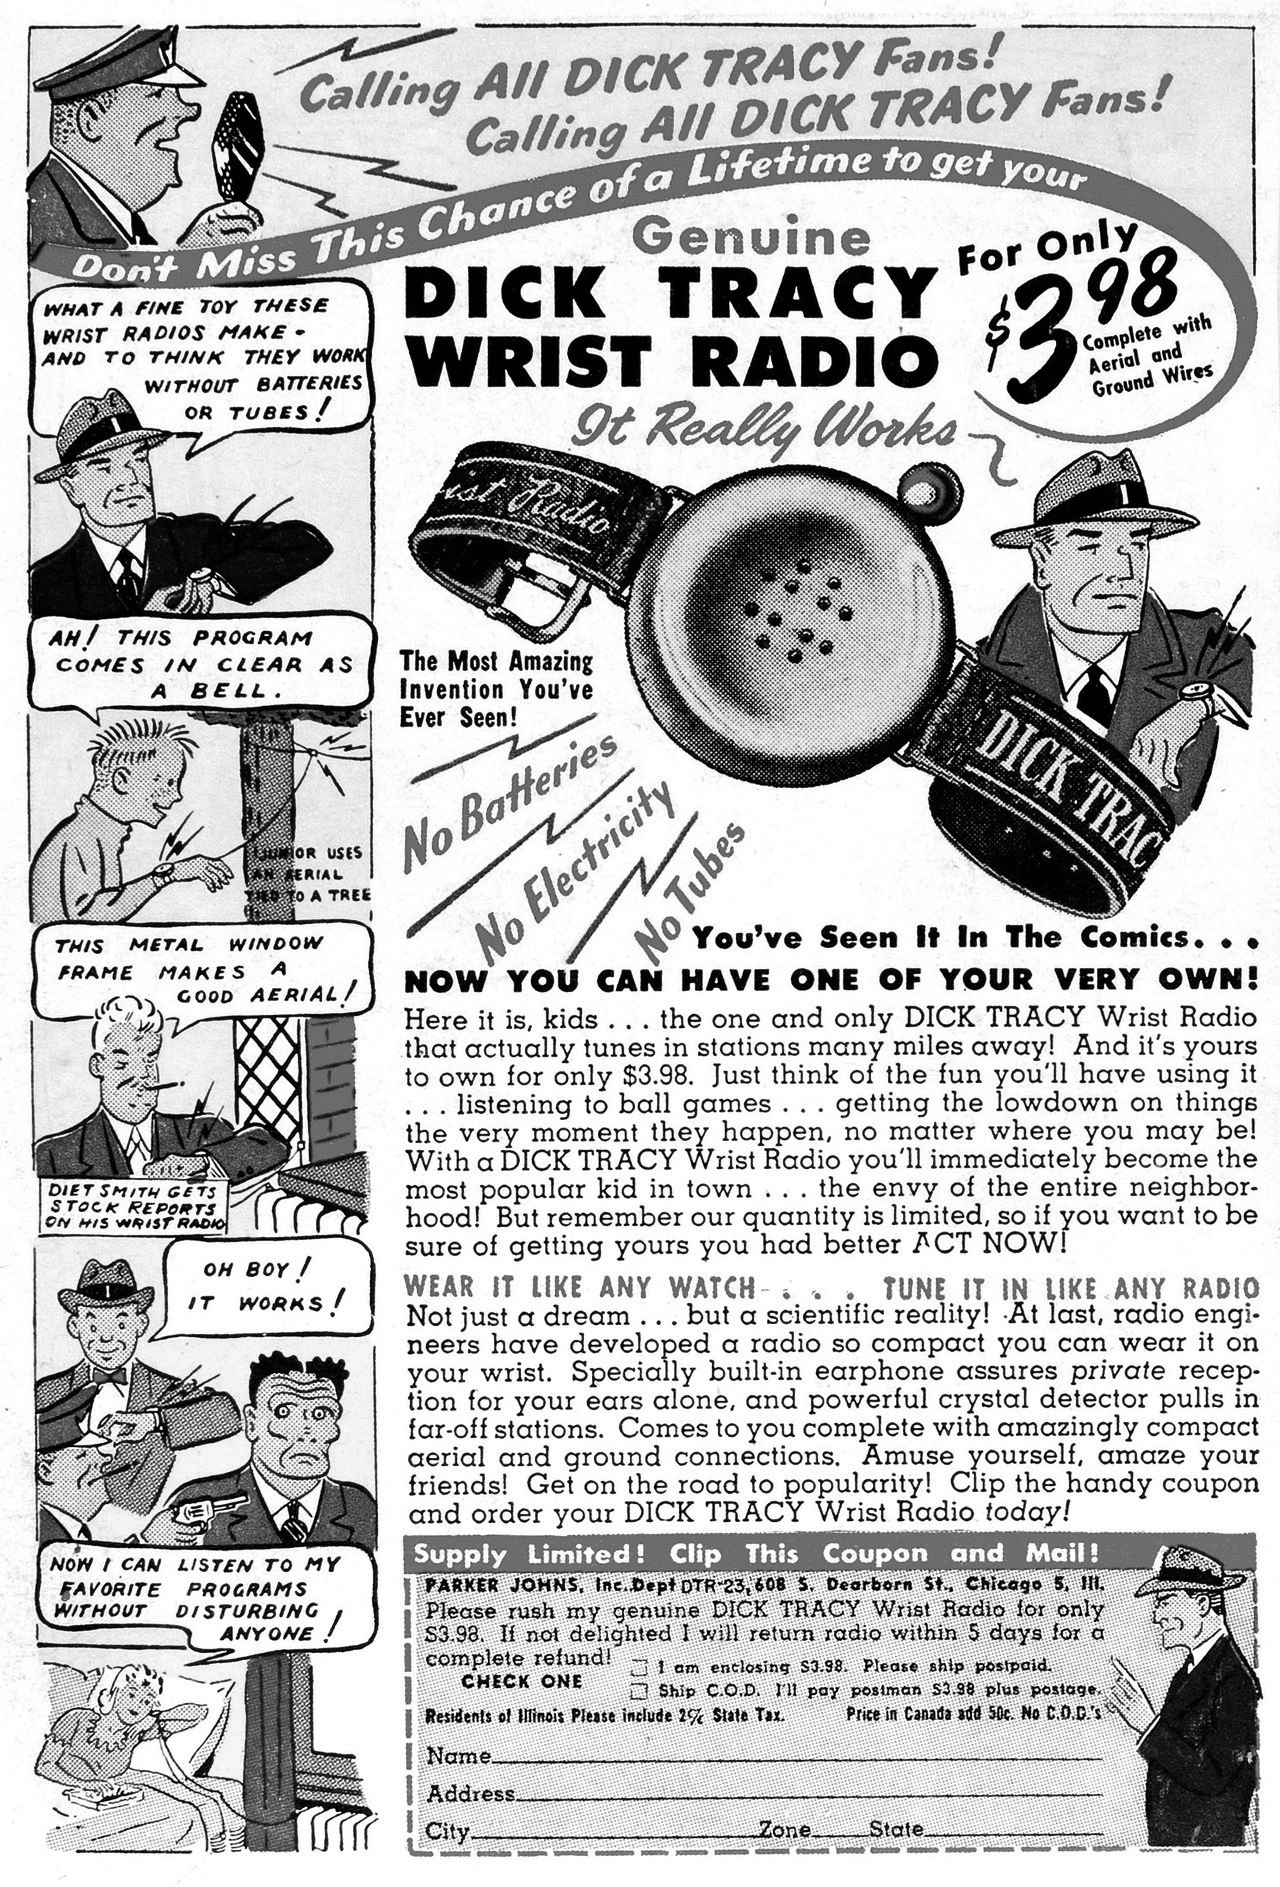 An advertisement for a Dick Tracy wrist radio.